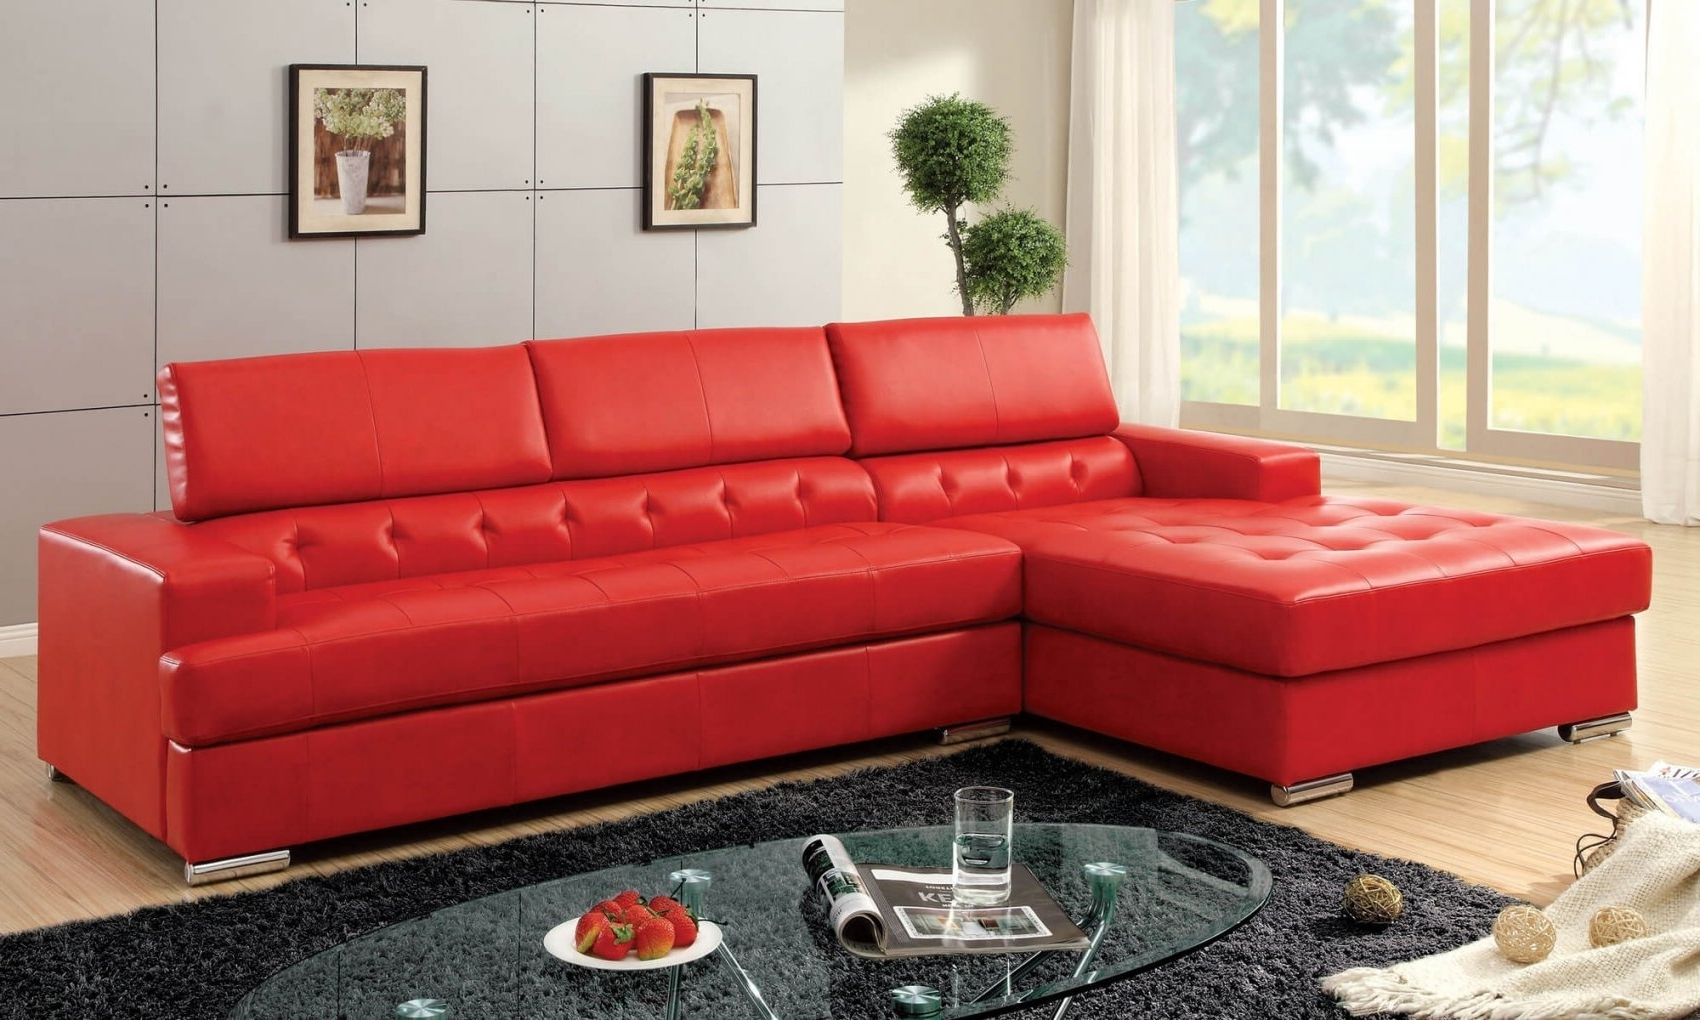 Red Leather Sectional Sofa Contemporary – Best Sectional In Throughout Fashionable Red Sectional Sofas With Ottoman (View 11 of 20)